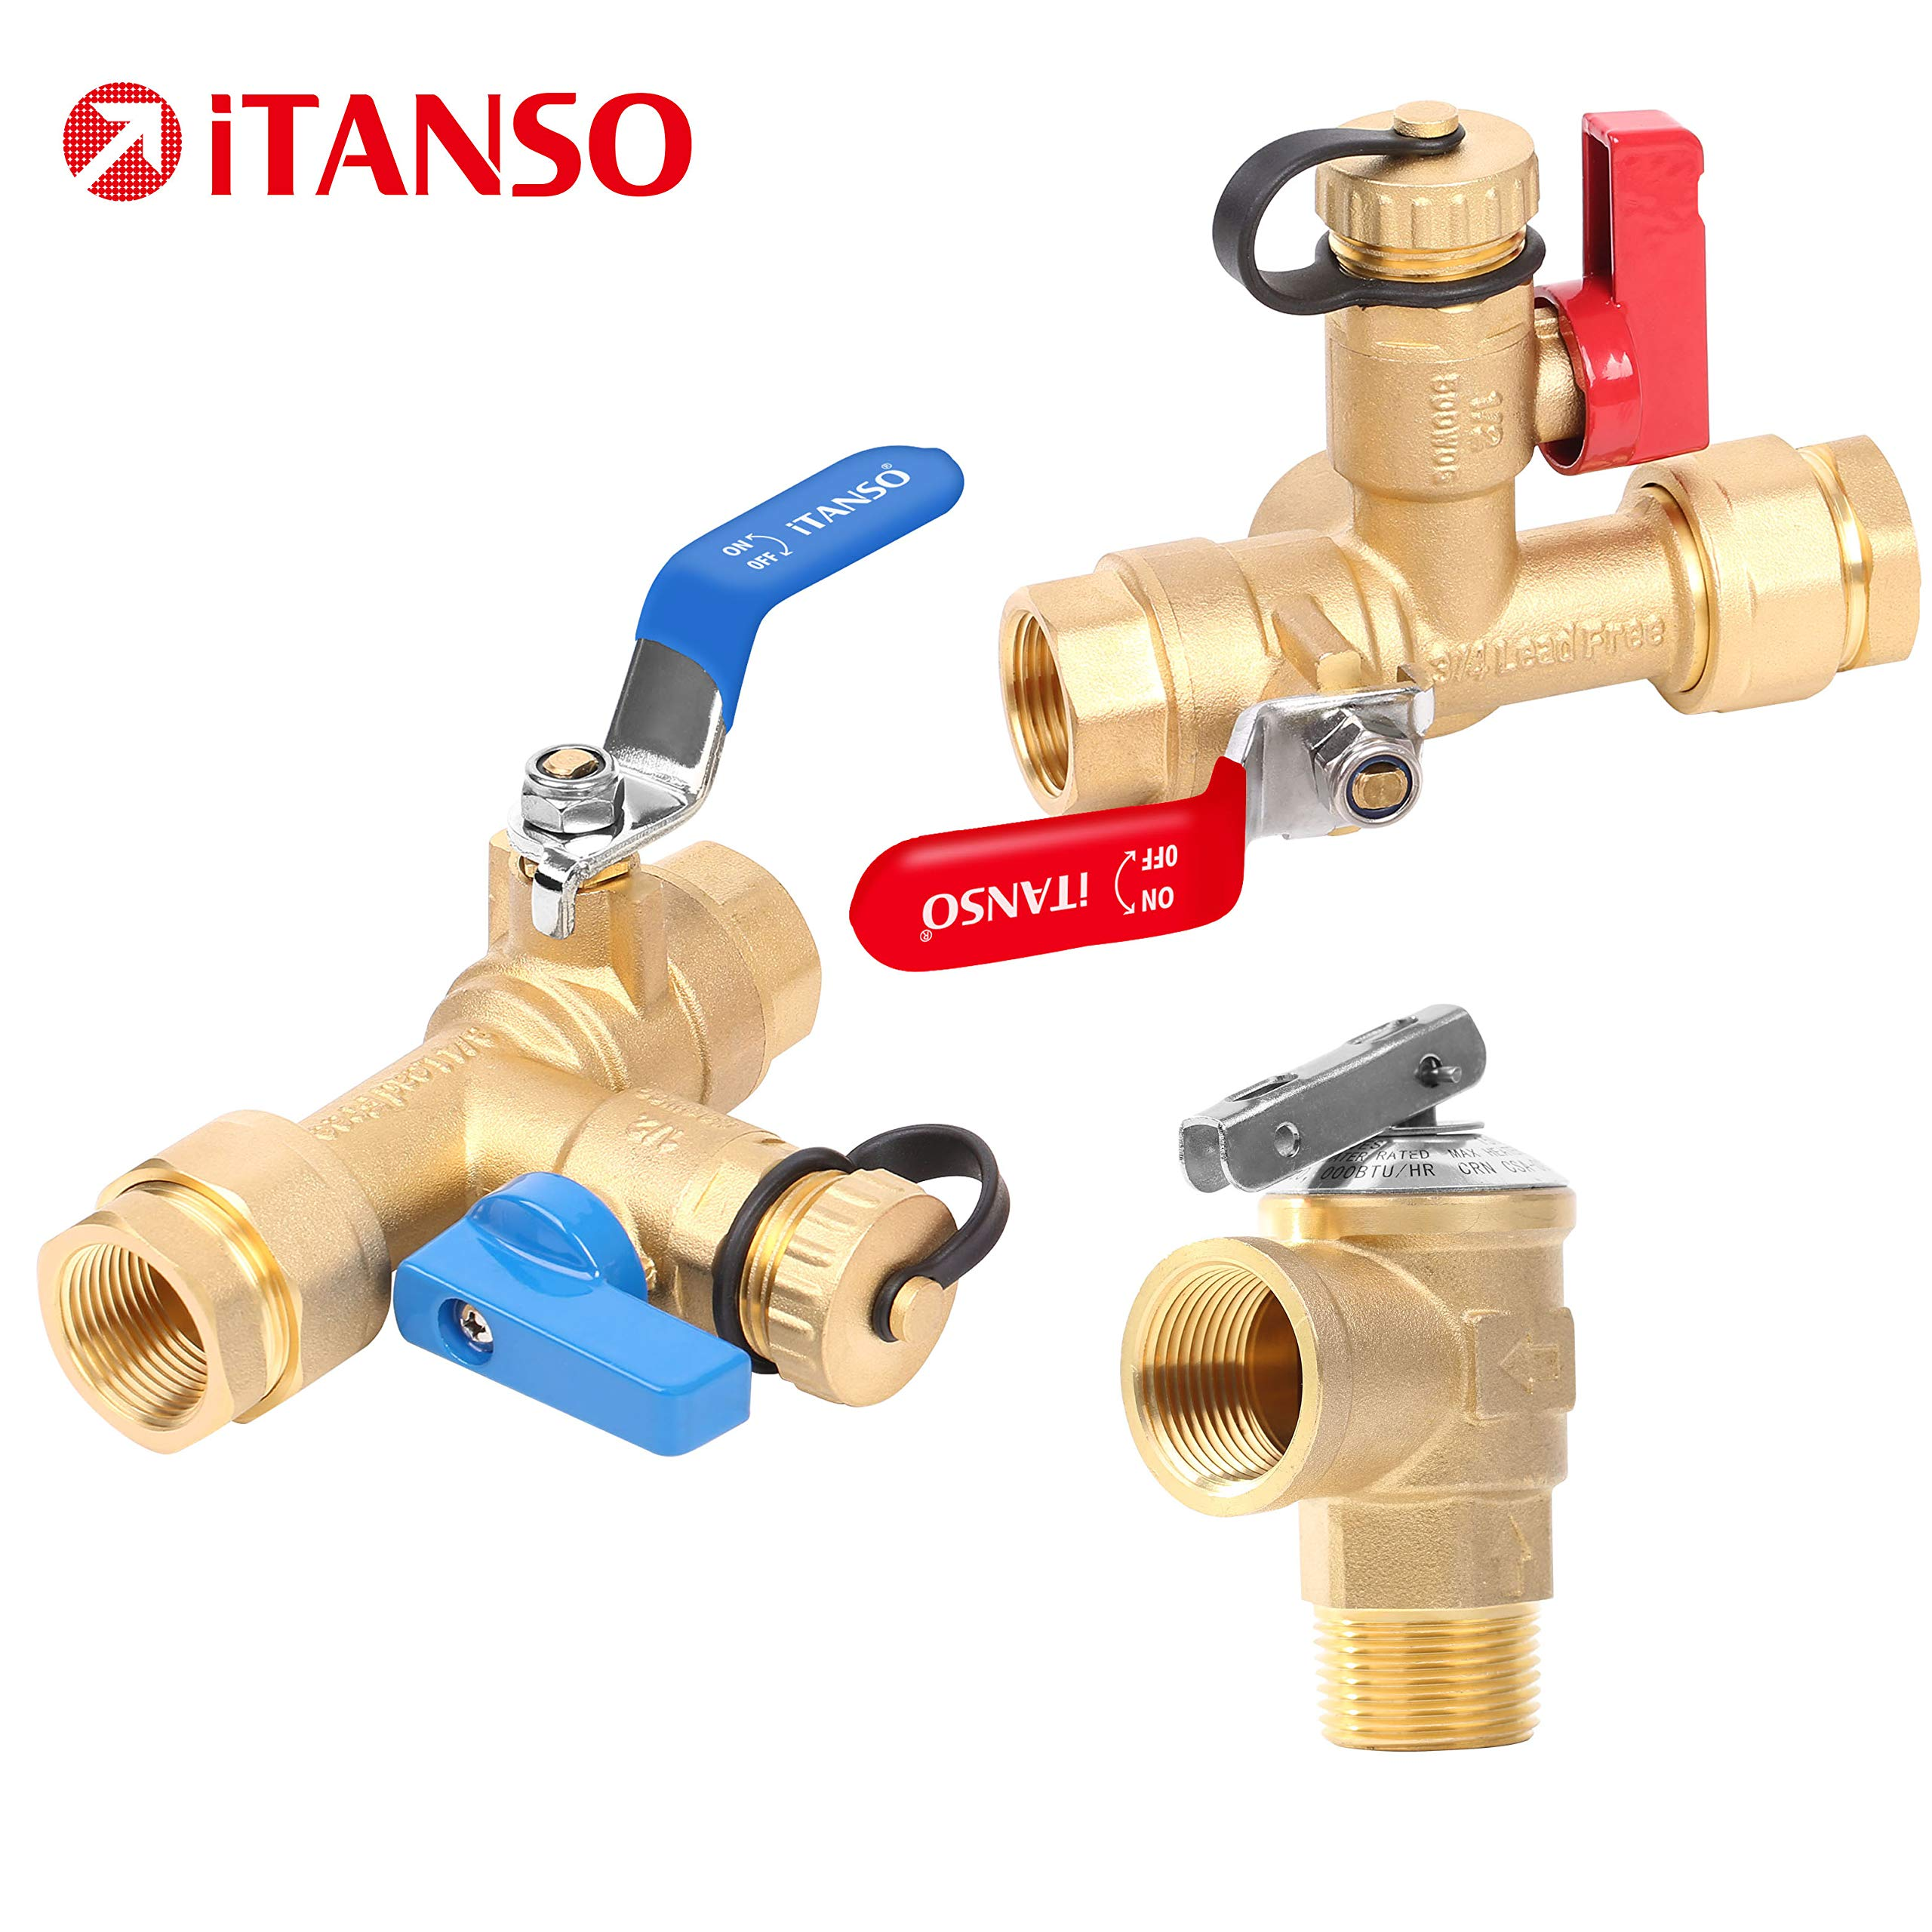 iTANSO 3/4-Inch IPS Isolator Tankless Water Heater Service Valve Kit with Clean Brass Construction by itanso